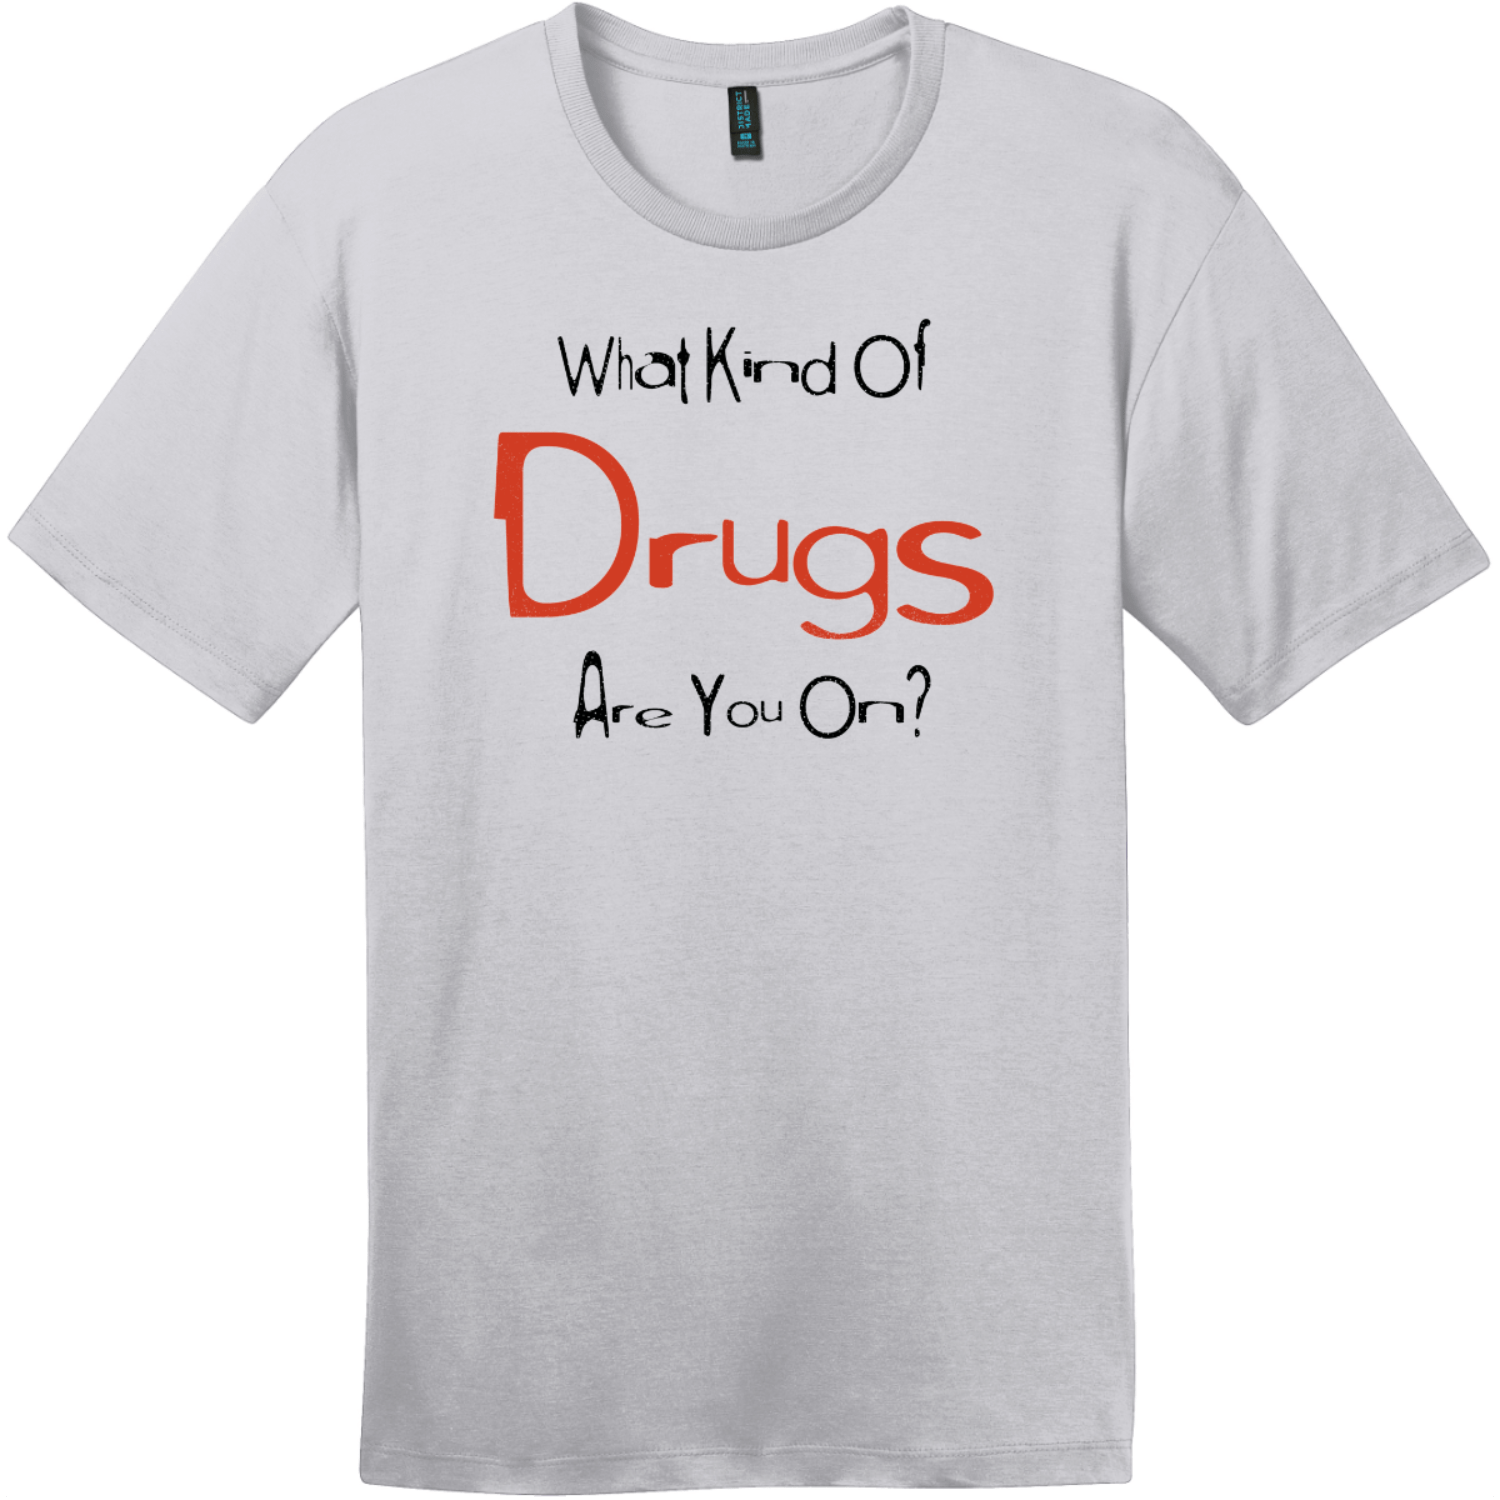 What Kind Of Drugs Are You On T-Shirt Silver District Perfect Weight Tee DT104